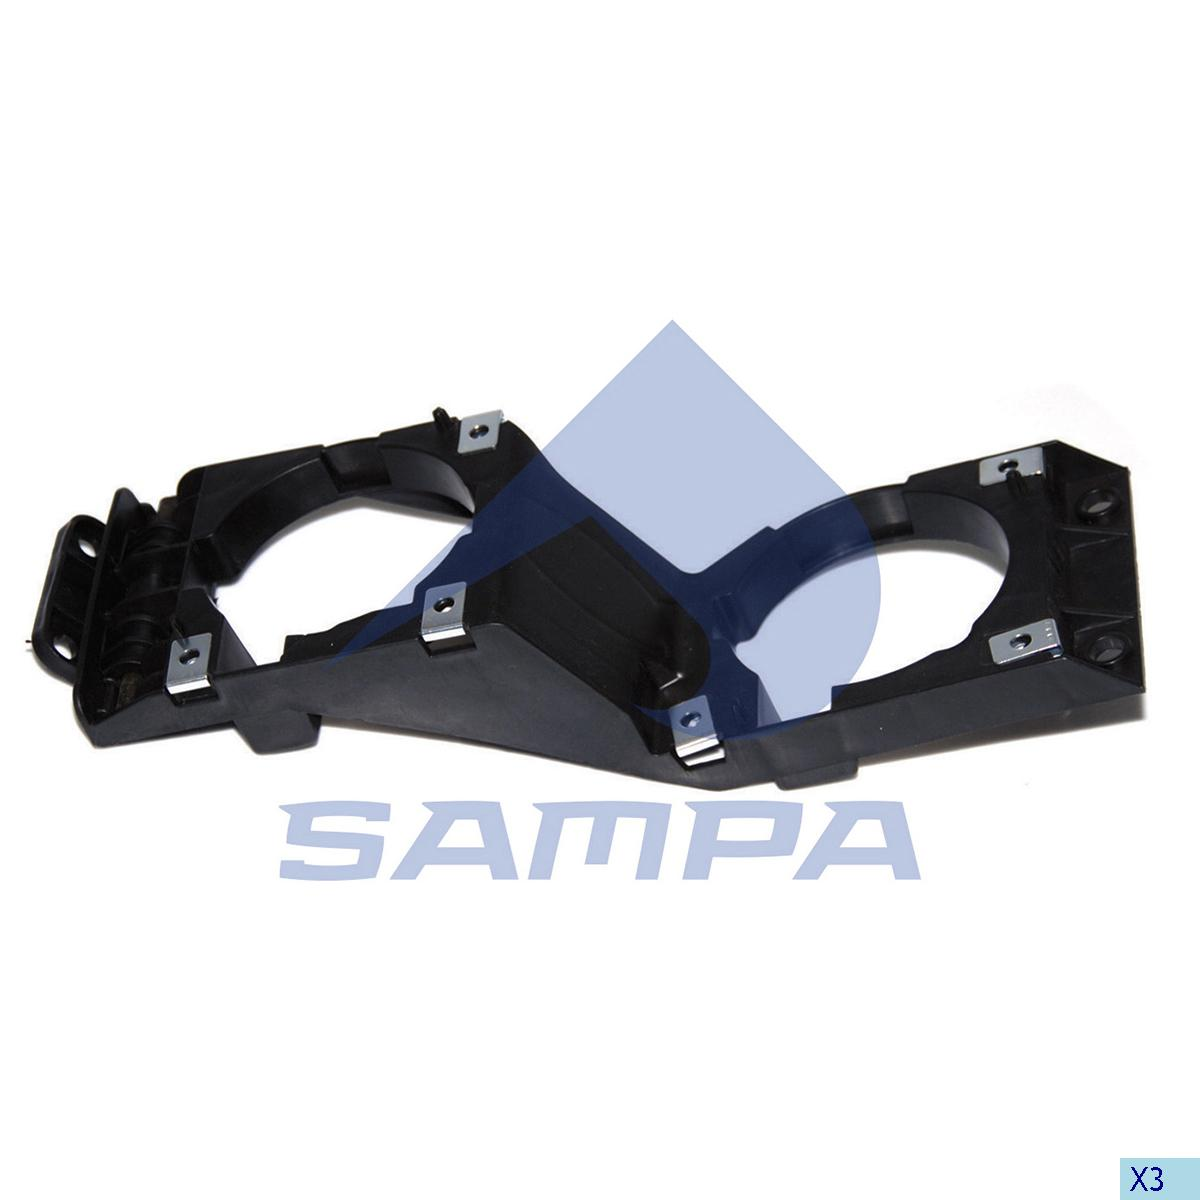 Bracket, Fog Lamp, Scania, Electric System